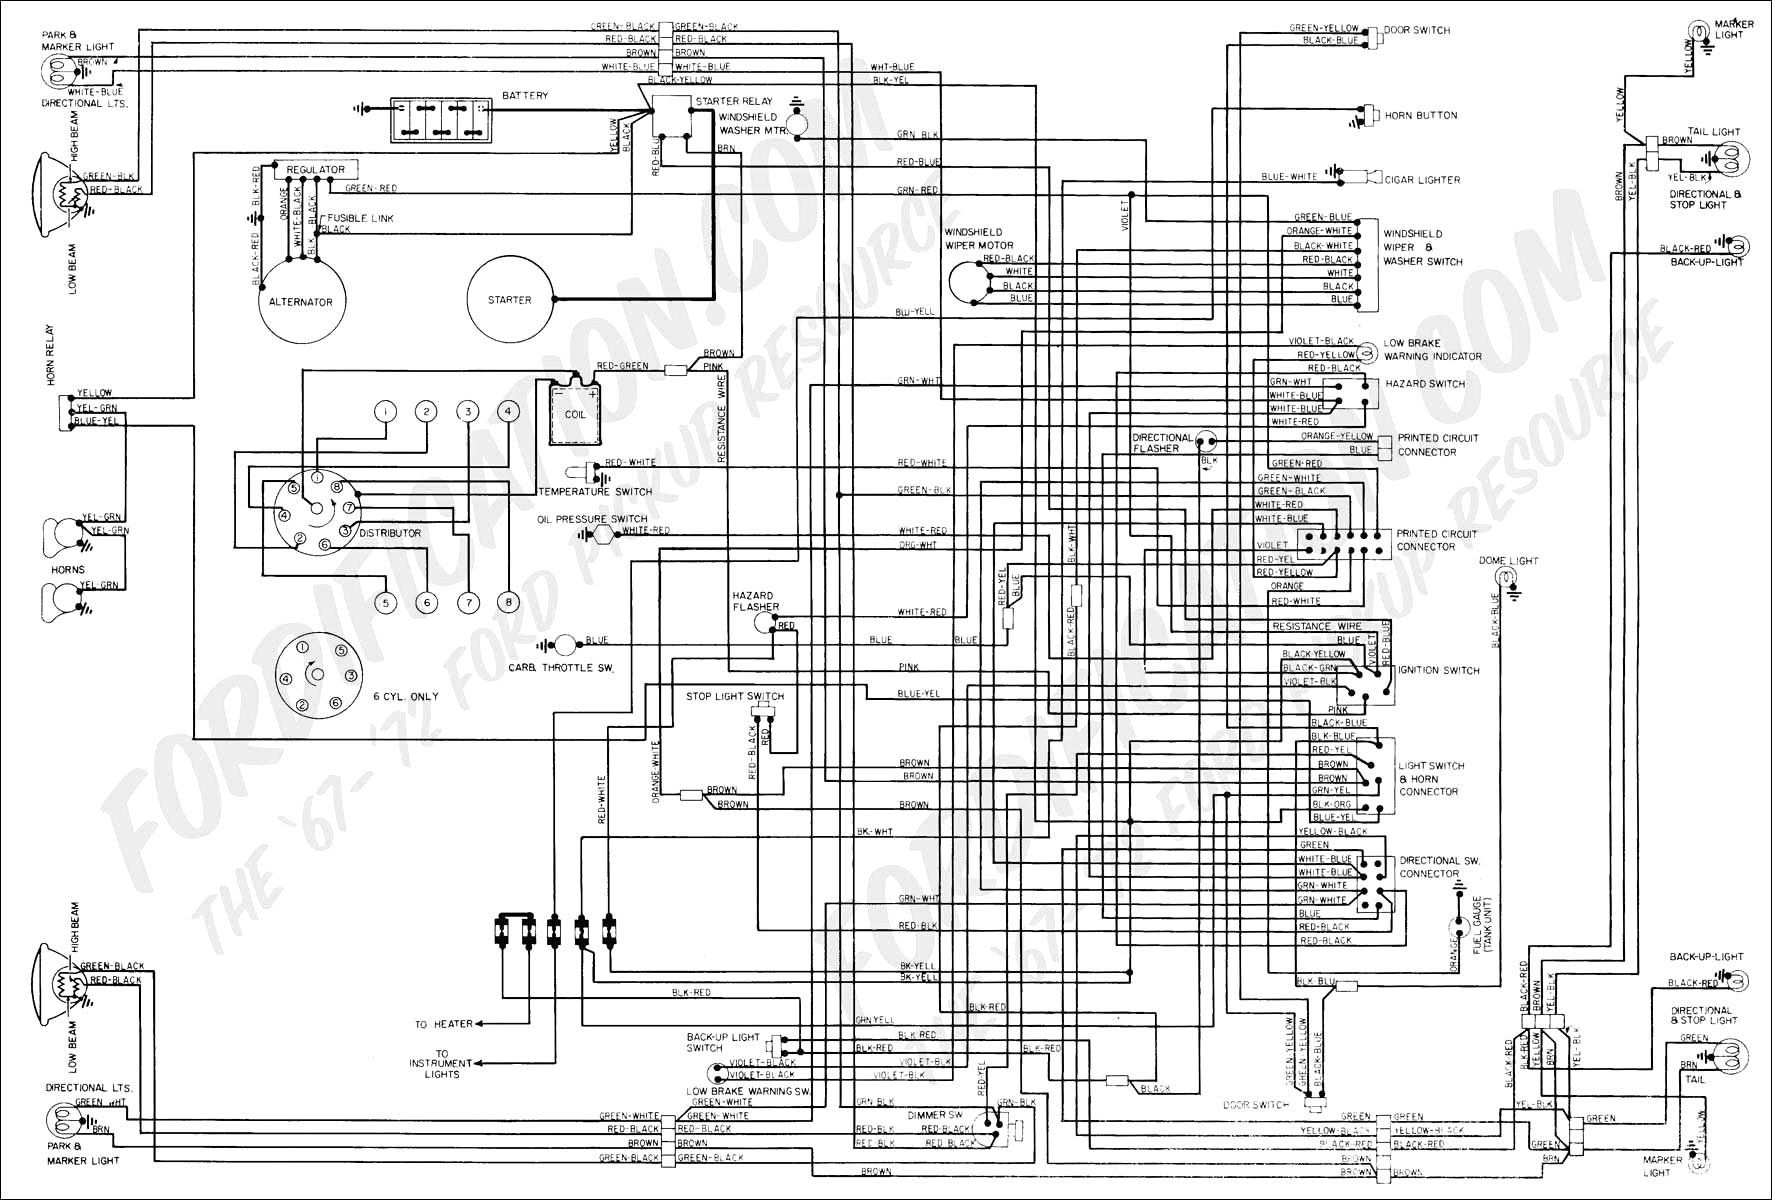 06 f250 wiring diagram wiring diagram val 2006 ford f250 wiring diagram 06 ford f250 wiring diagram [ 1772 x 1200 Pixel ]